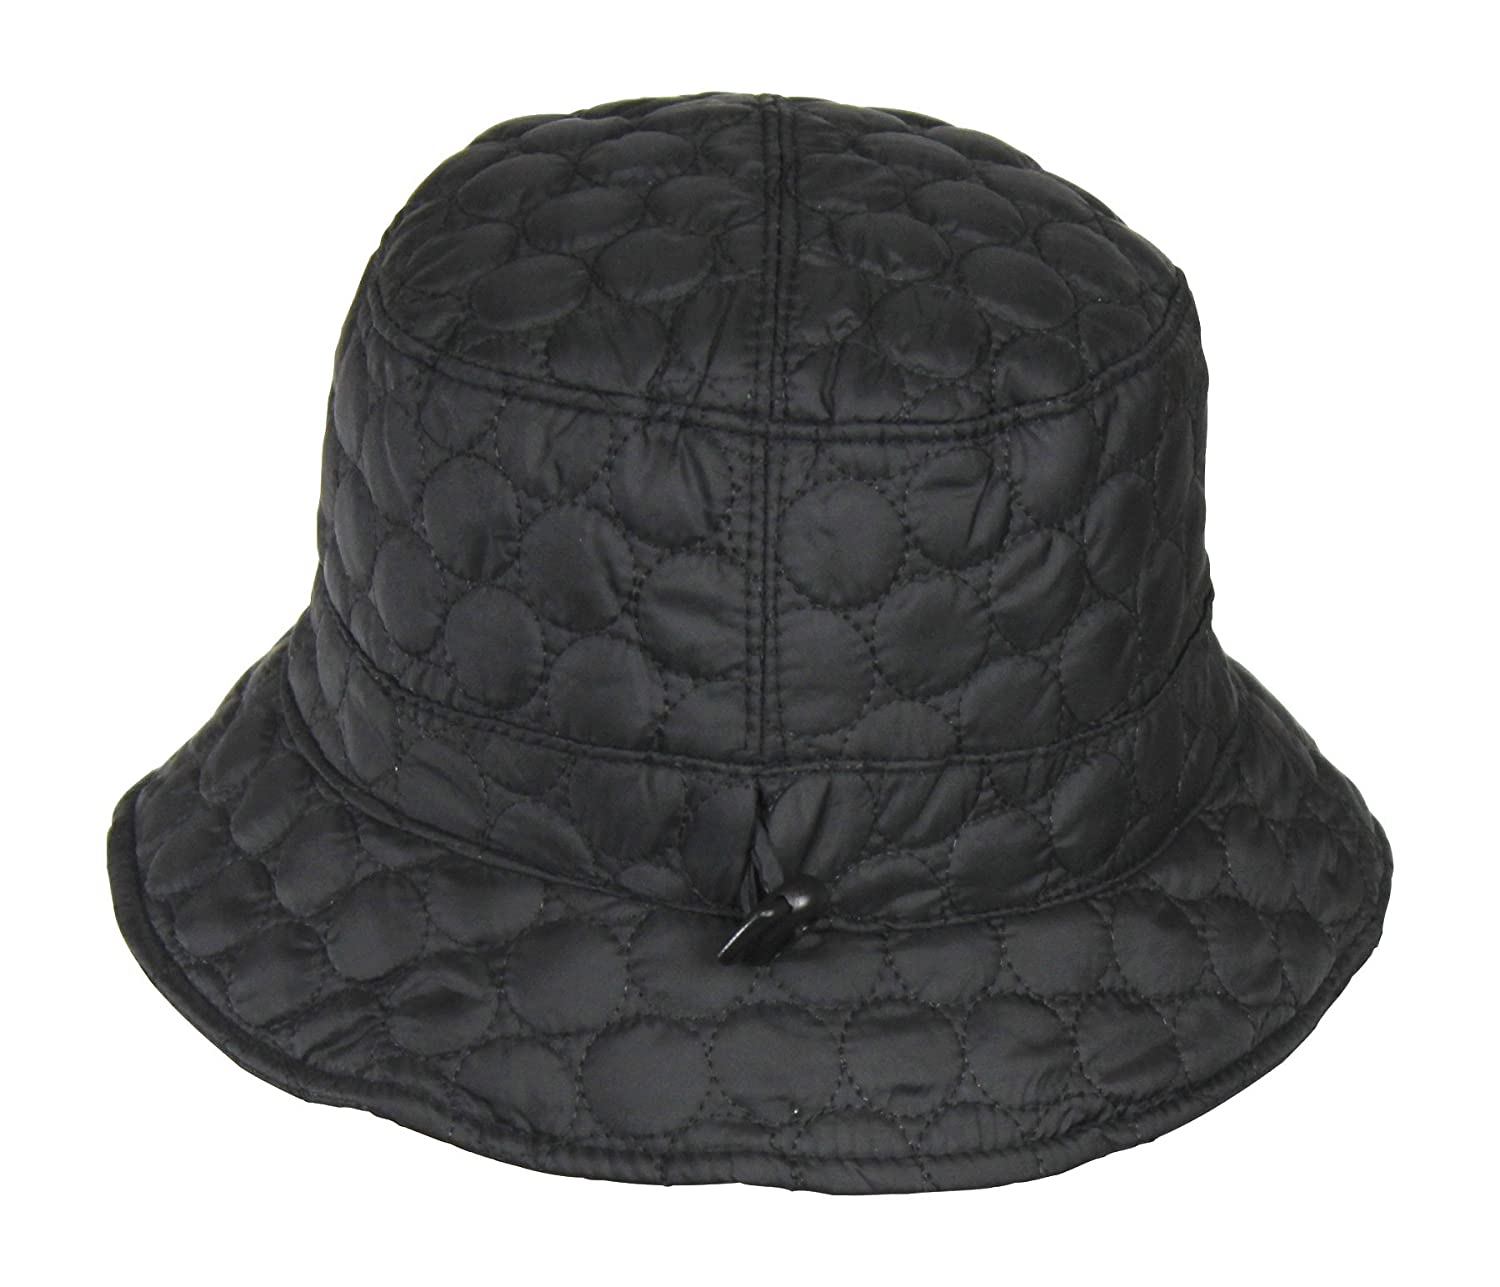 Black Packable Water Repellent Quilted Bucket Rain Hat w  Adjustable  Drawstring at Amazon Women s Clothing store  d1606911b3a3